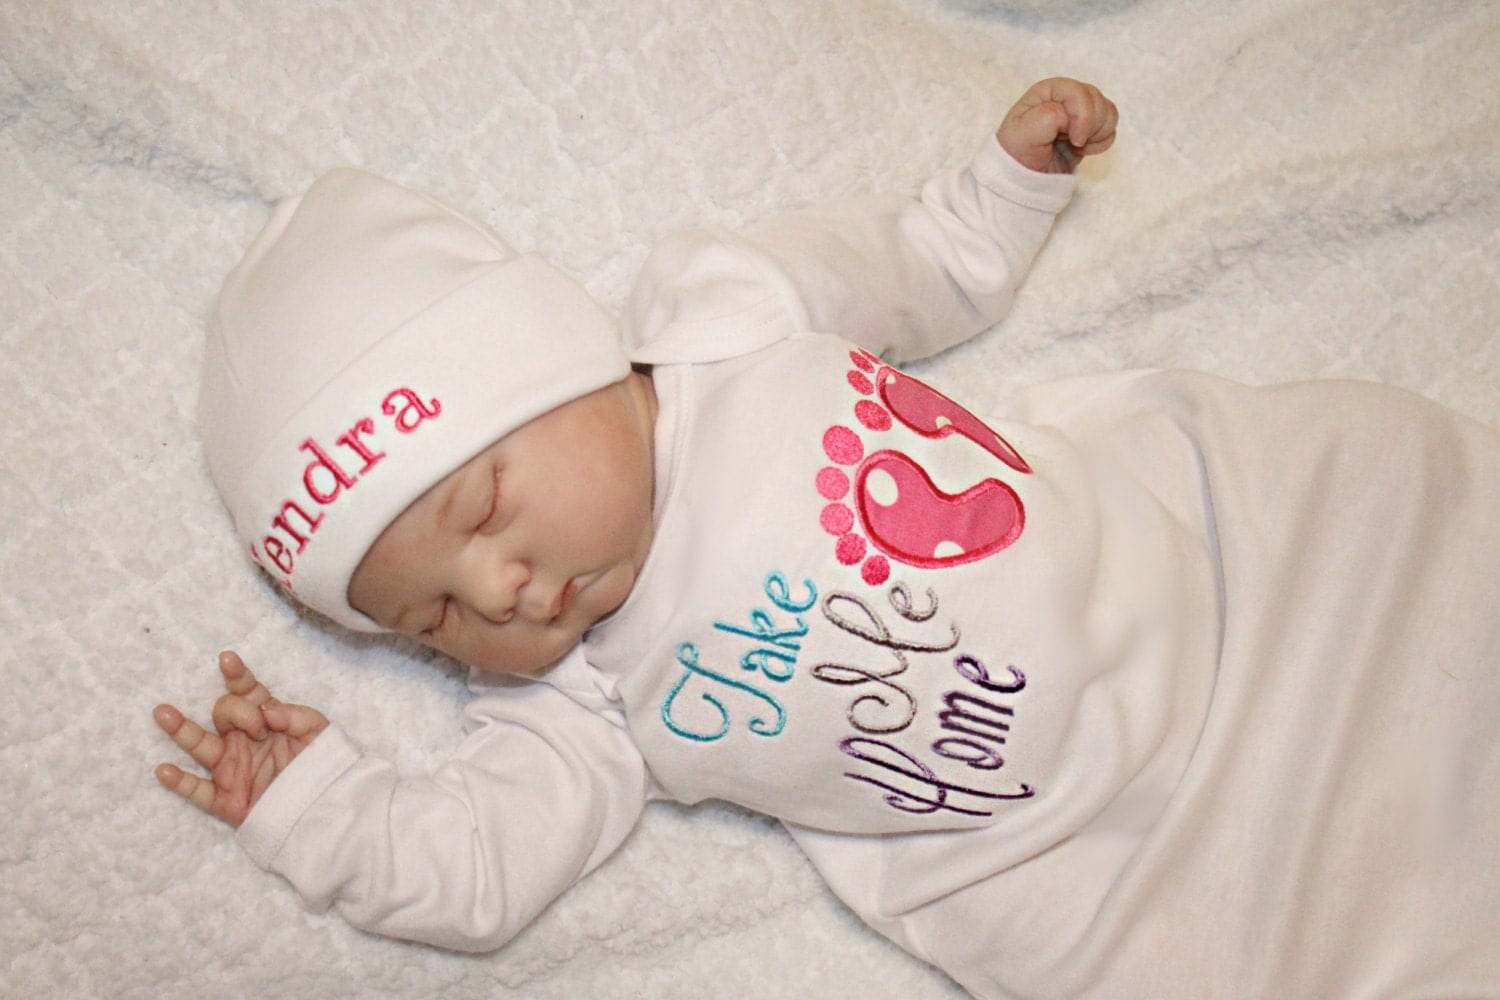 Newborn Girl Coming Home Outfit Baby Girl Hospital Outfit Take